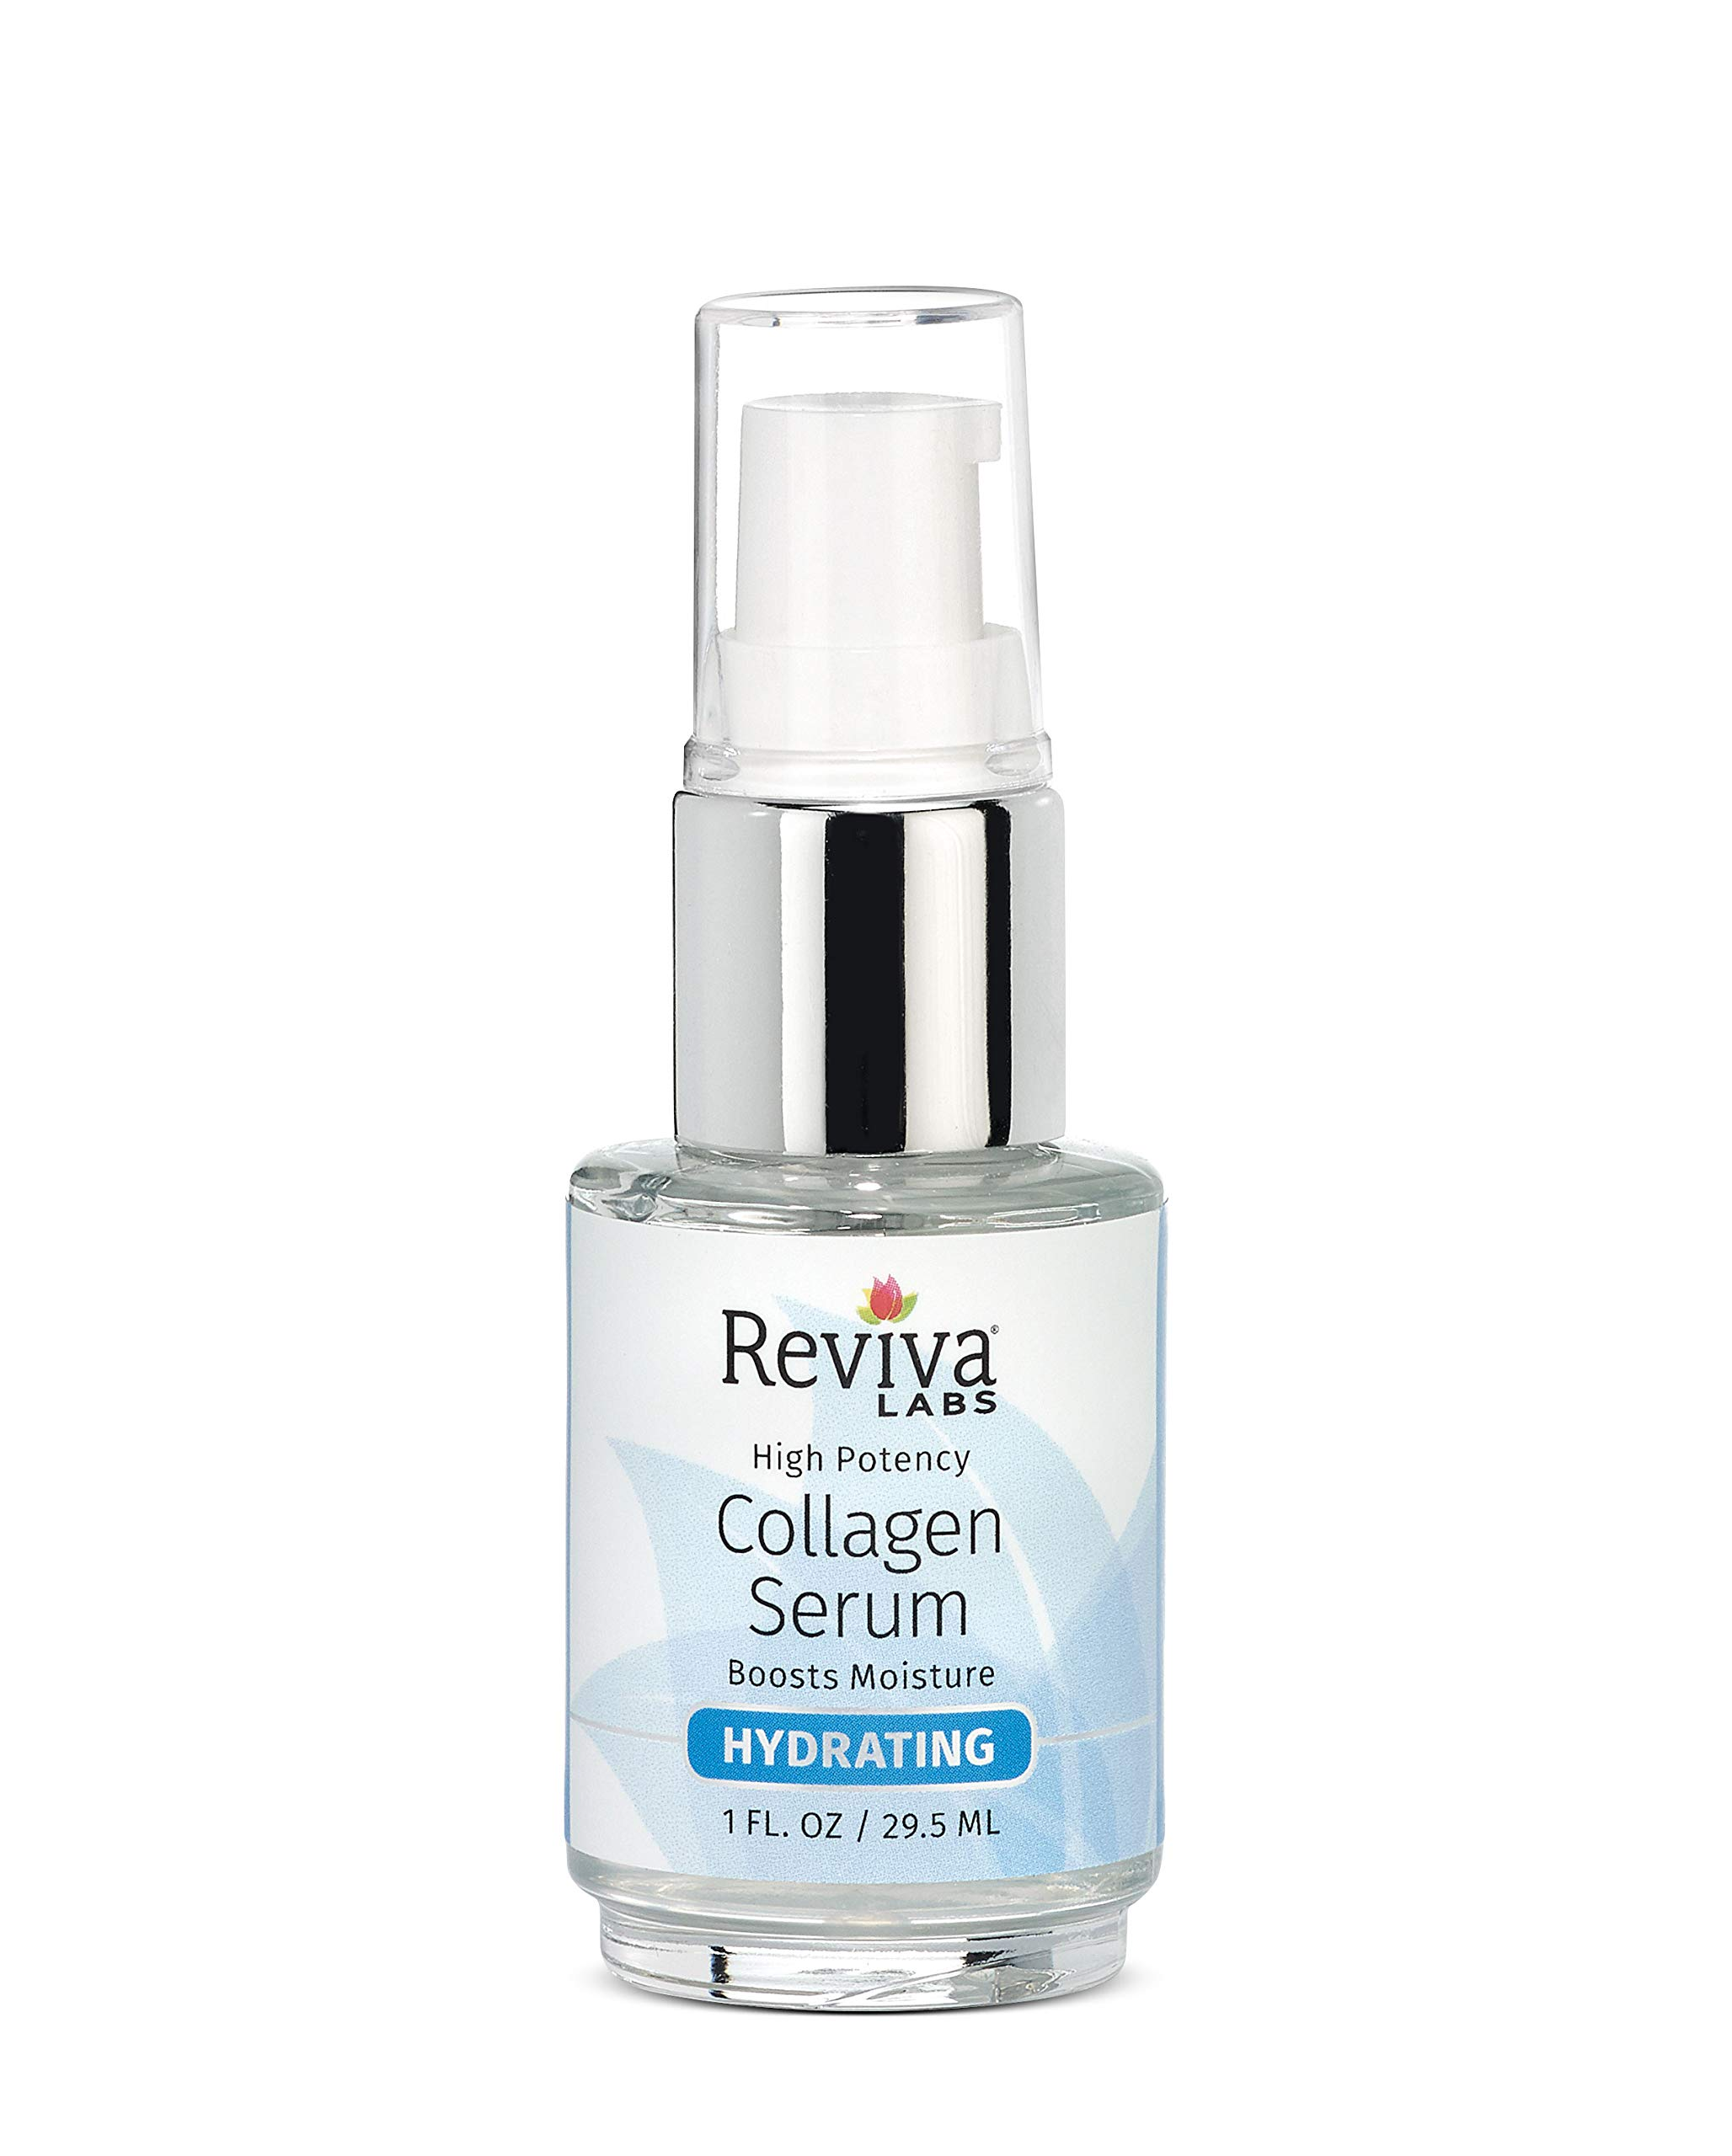 High Potency Collagen Serum Reviva